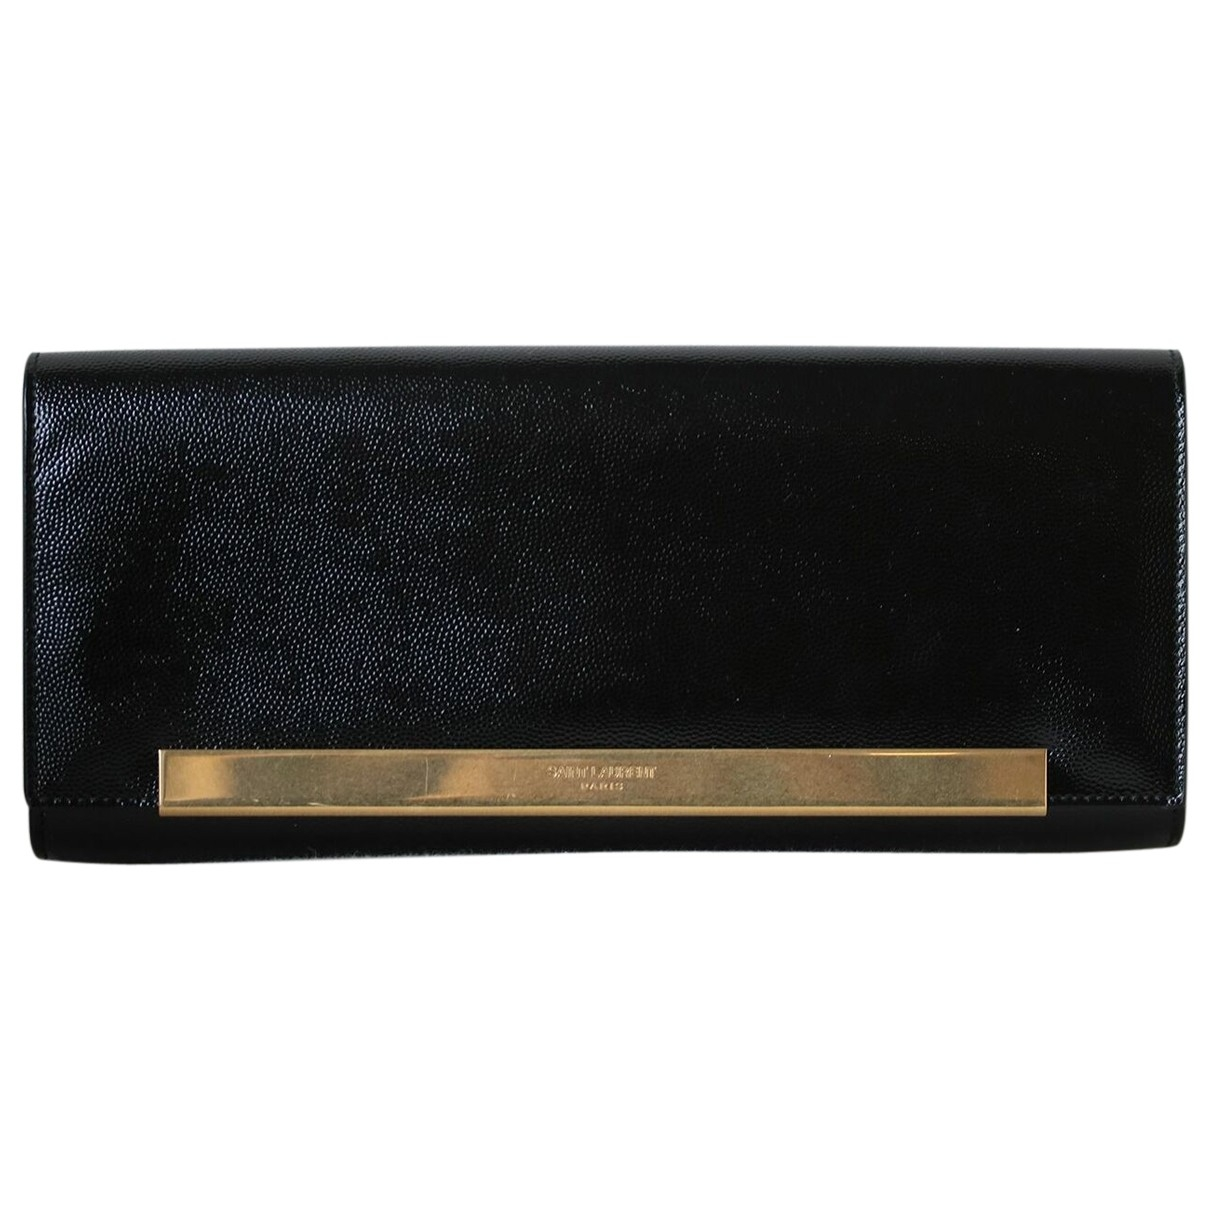 Saint Laurent \N Black Patent leather Clutch bag for Women \N